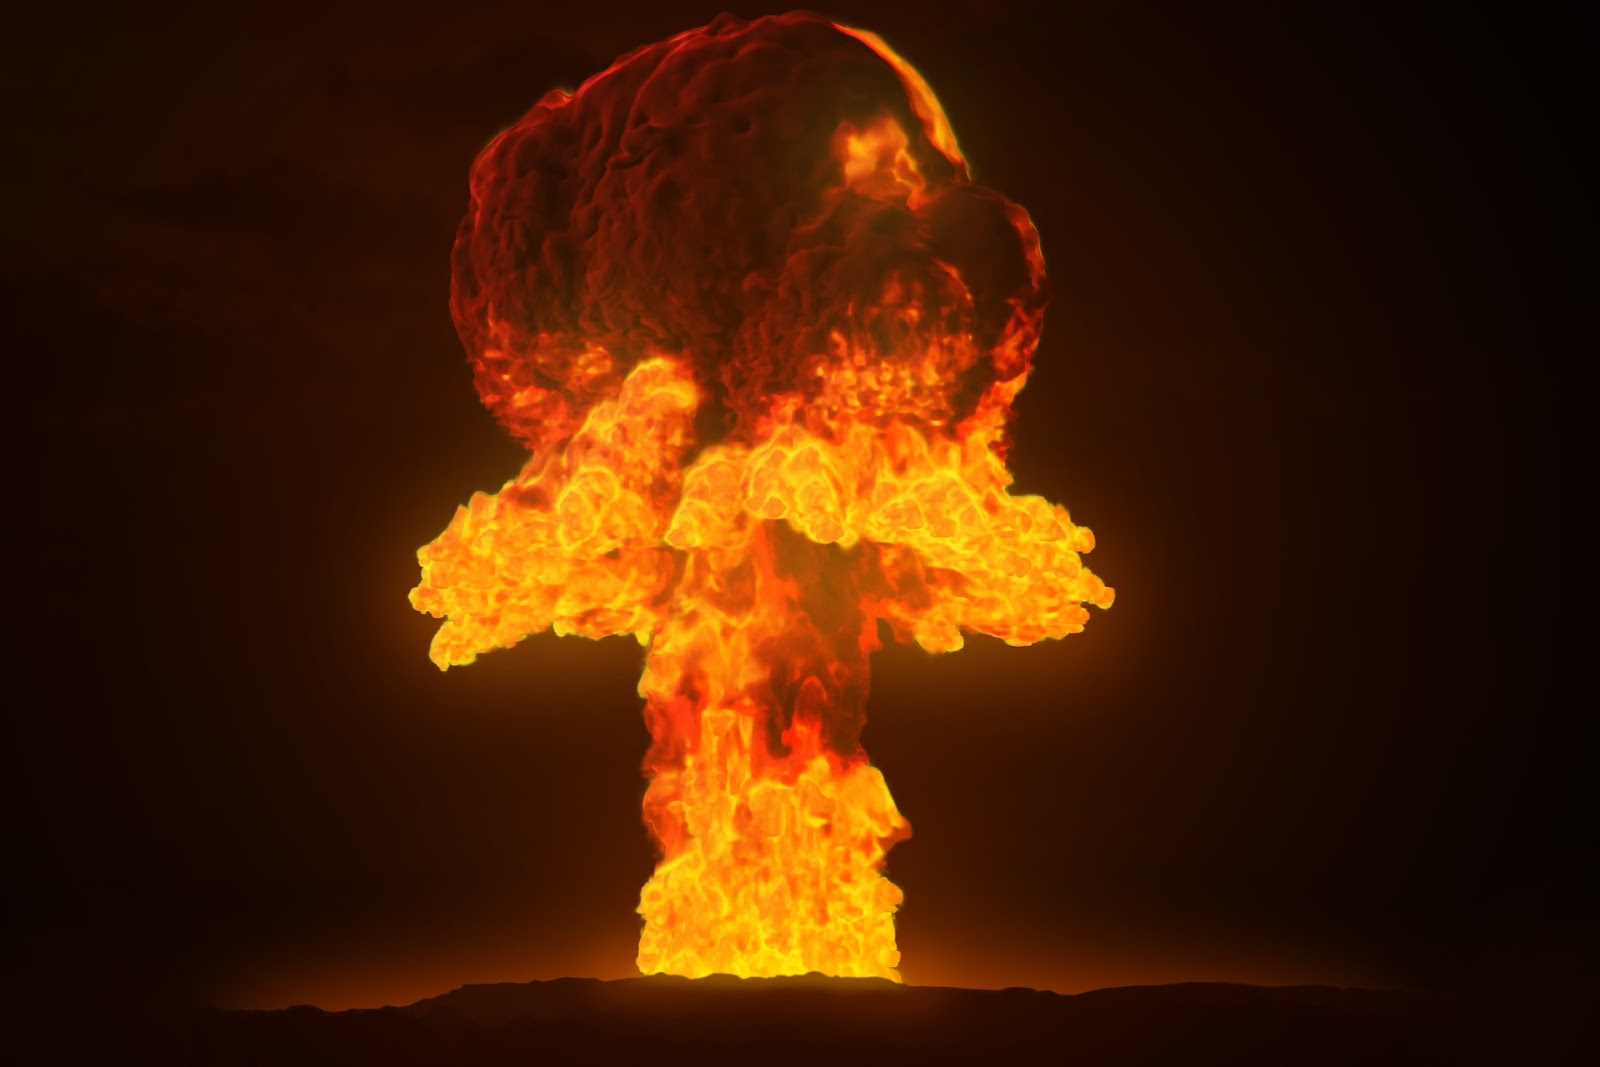 photo of a nuclear explosion to illustrate a blog post about movie hunter killer